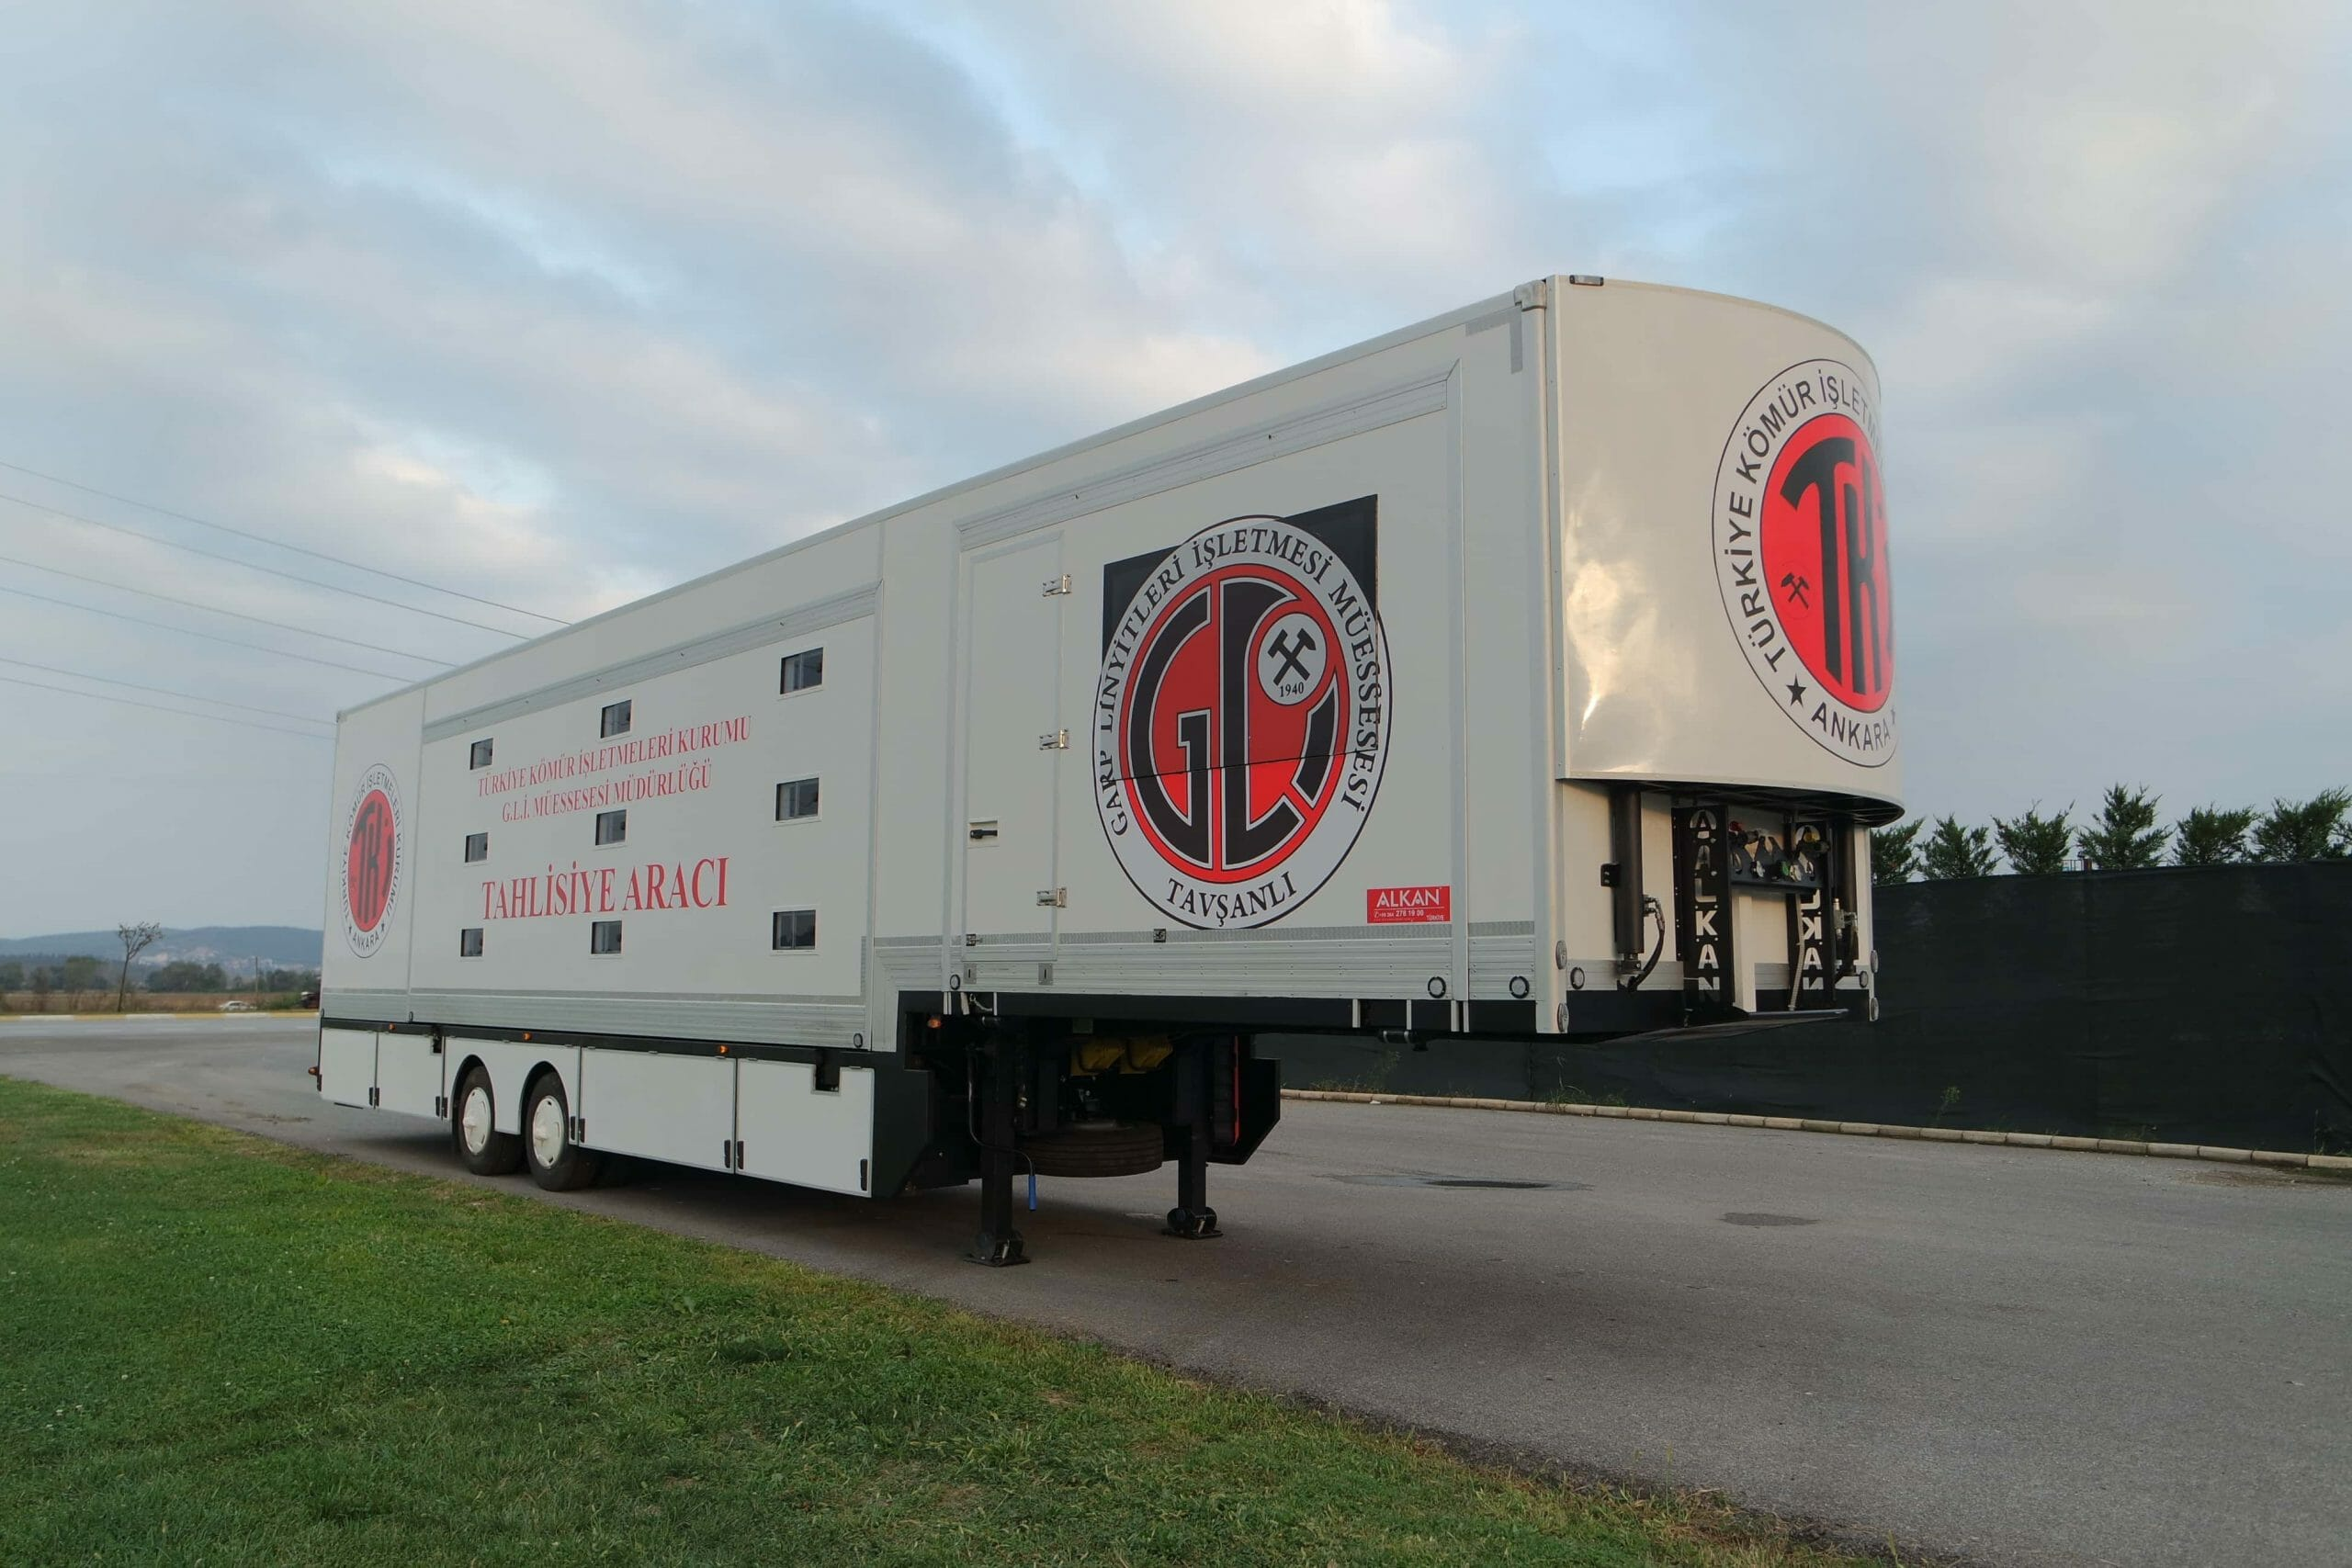 mobile-dormitory-trailer-vehicle-4-scaled.jpg